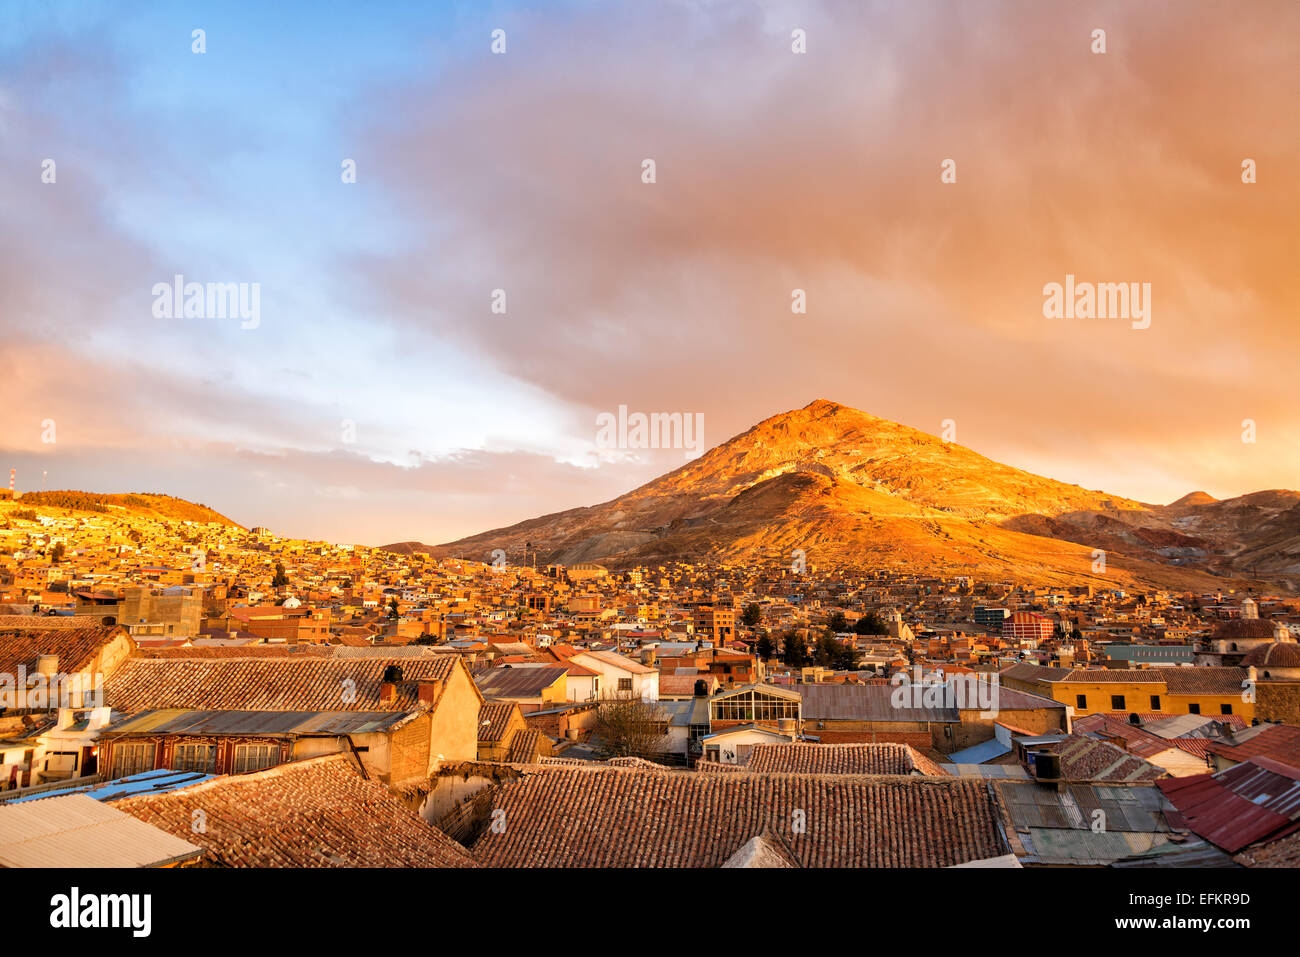 Potosi, Bolivia at sunset with Cerro Rico in the background - Stock Image